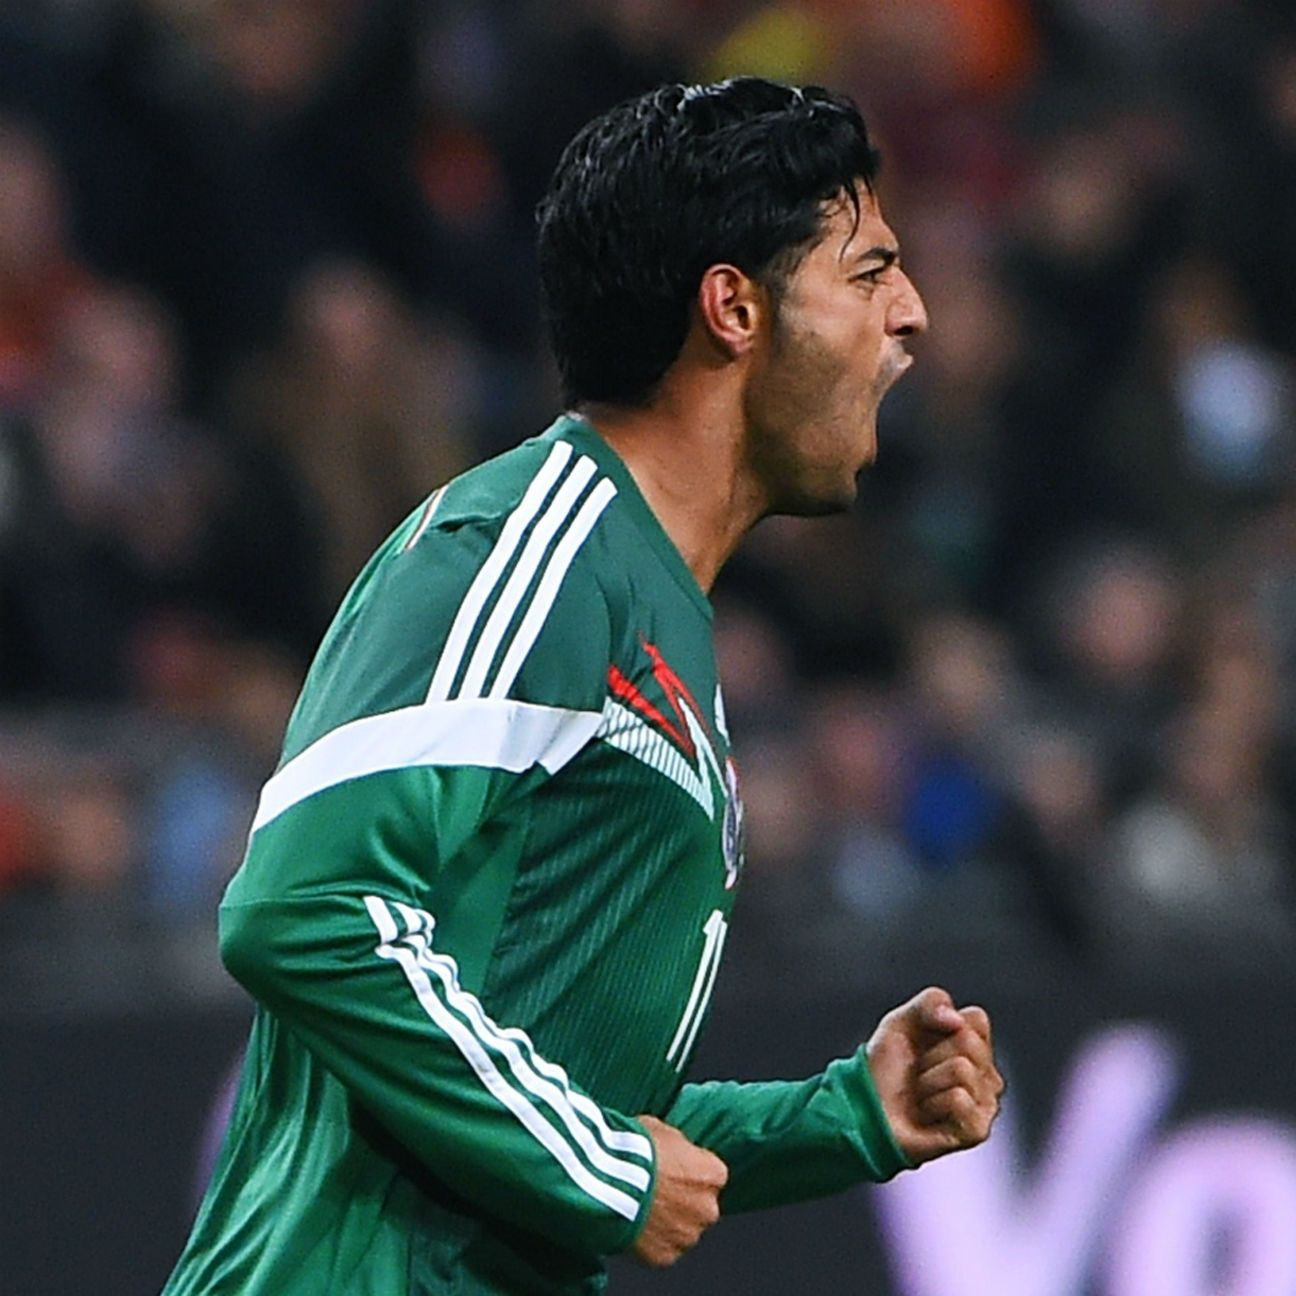 Carlos Vela made a roaring return to the Mexican national team with two sparkling goals in El Tri's 3-2 triumph.